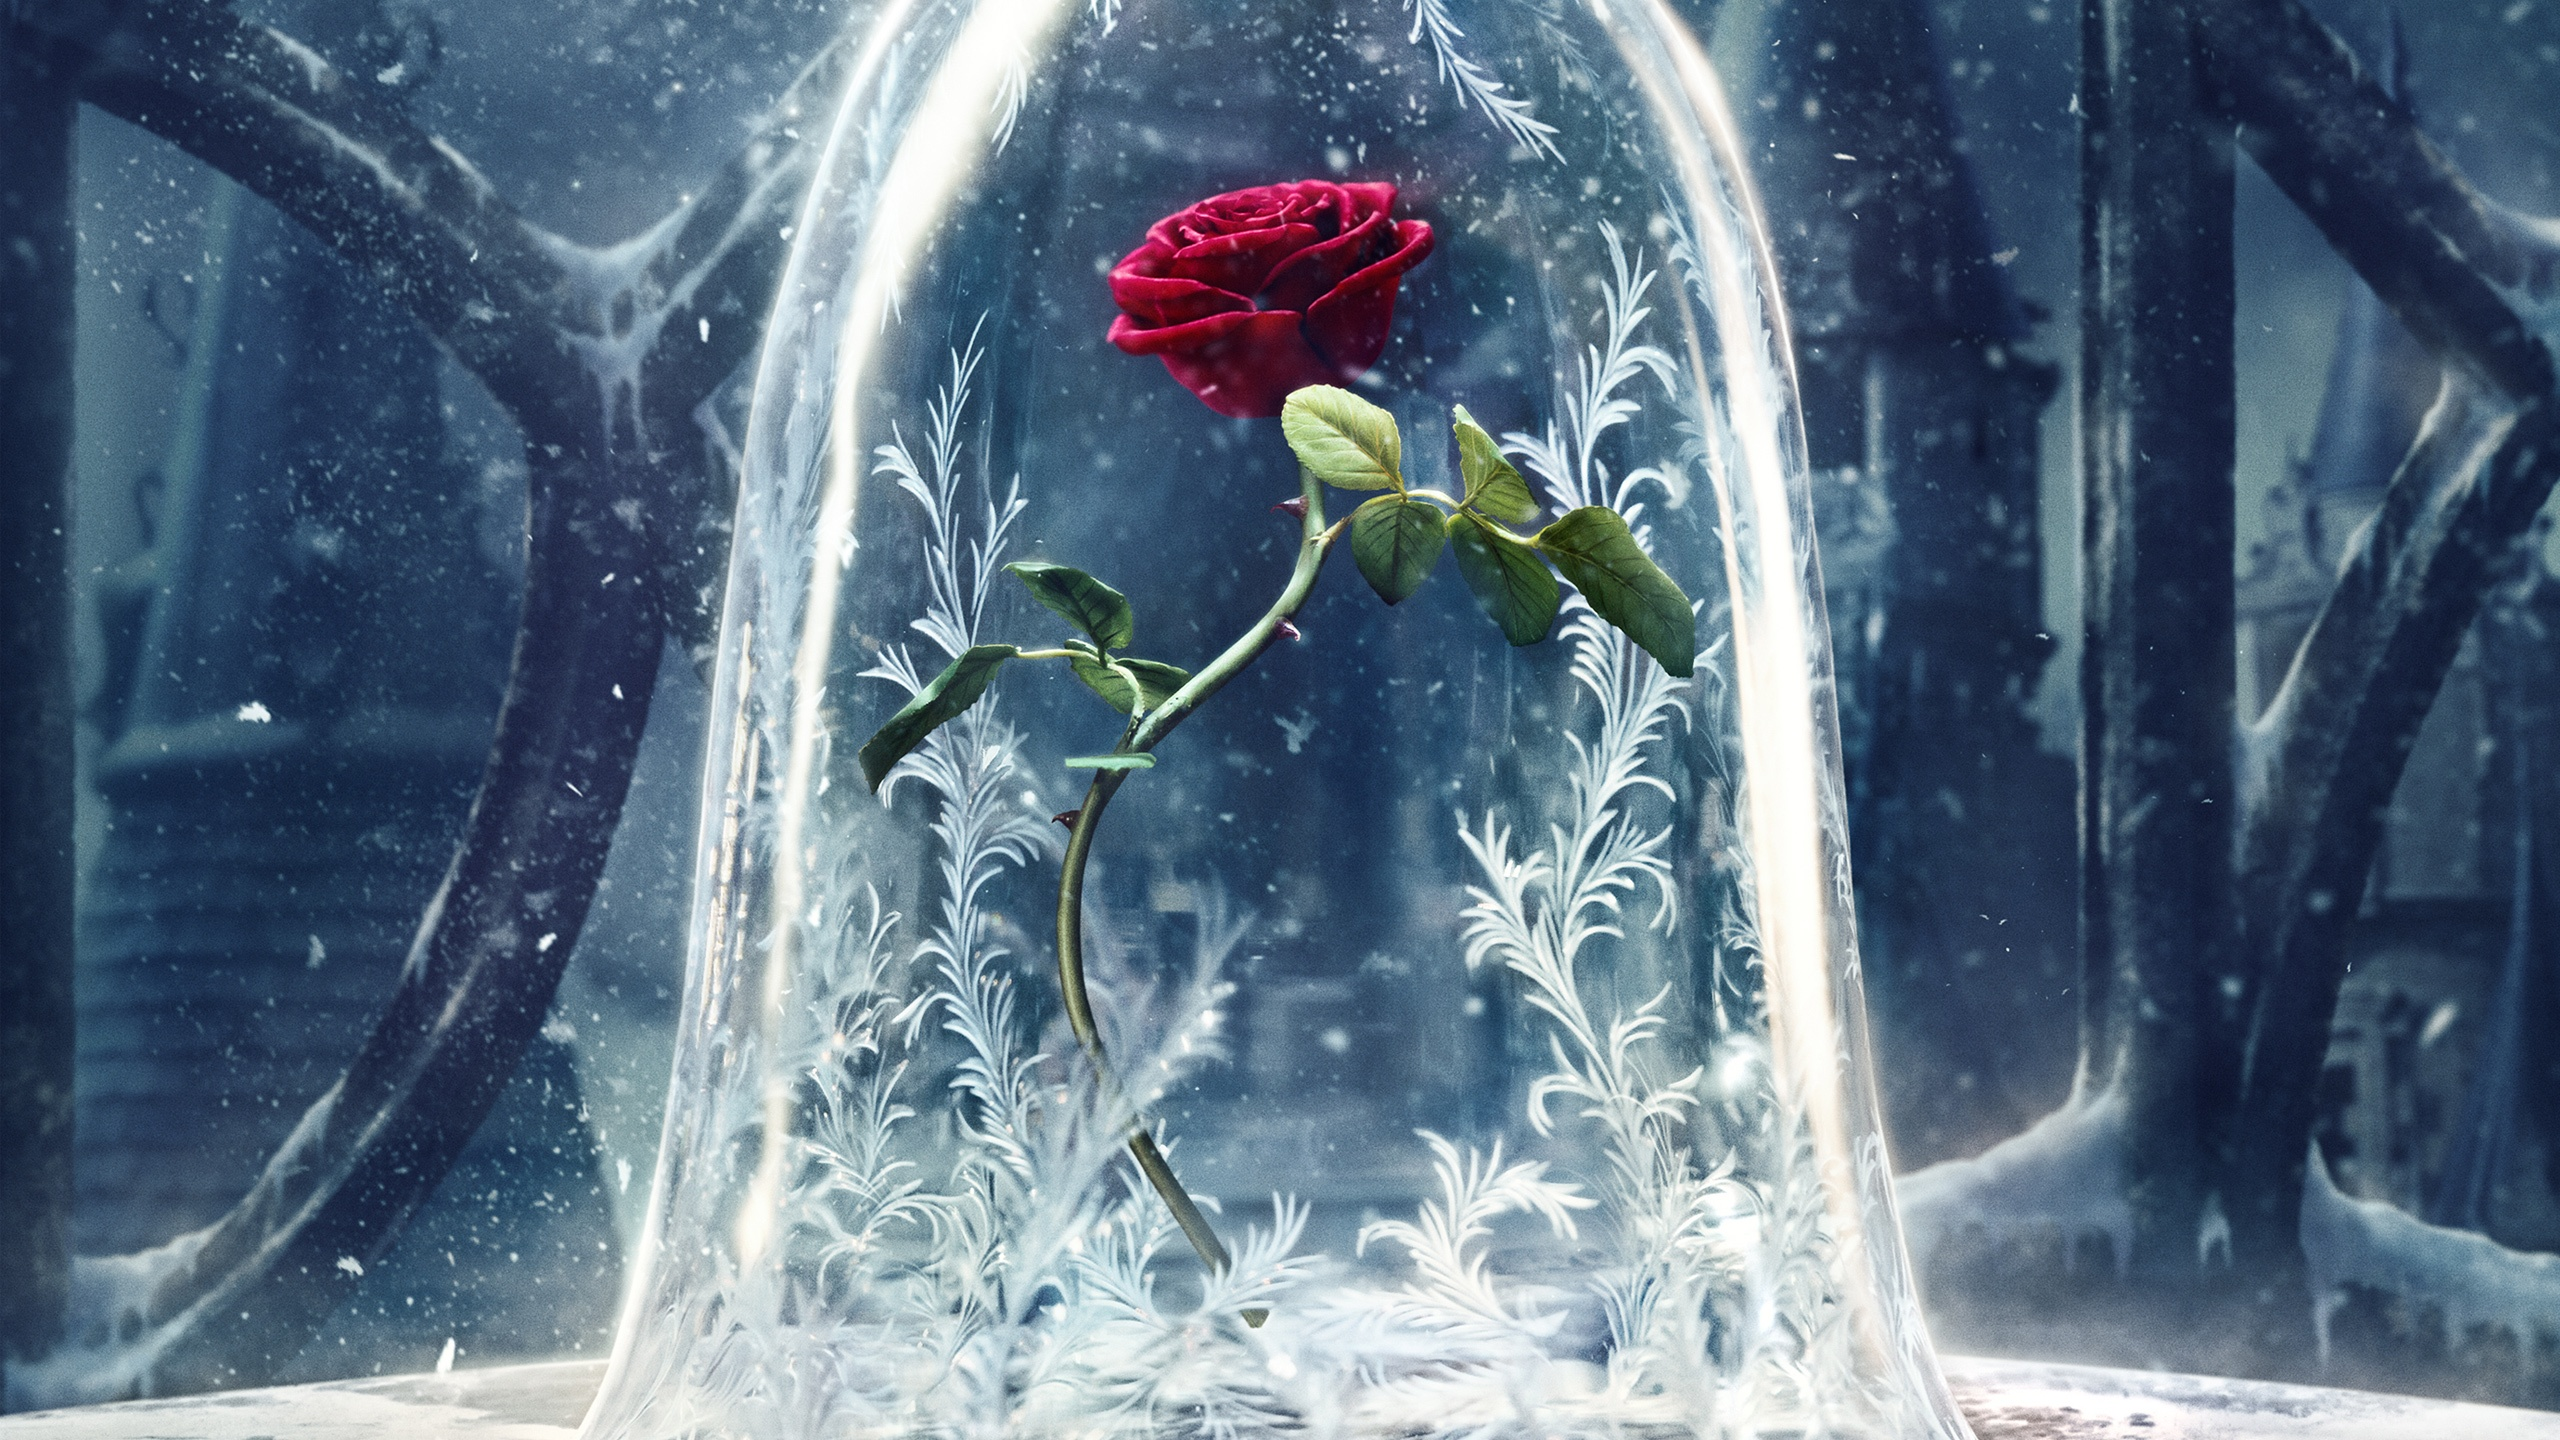 26 Beauty And The Beast 2017 Hd Wallpapers Background Images